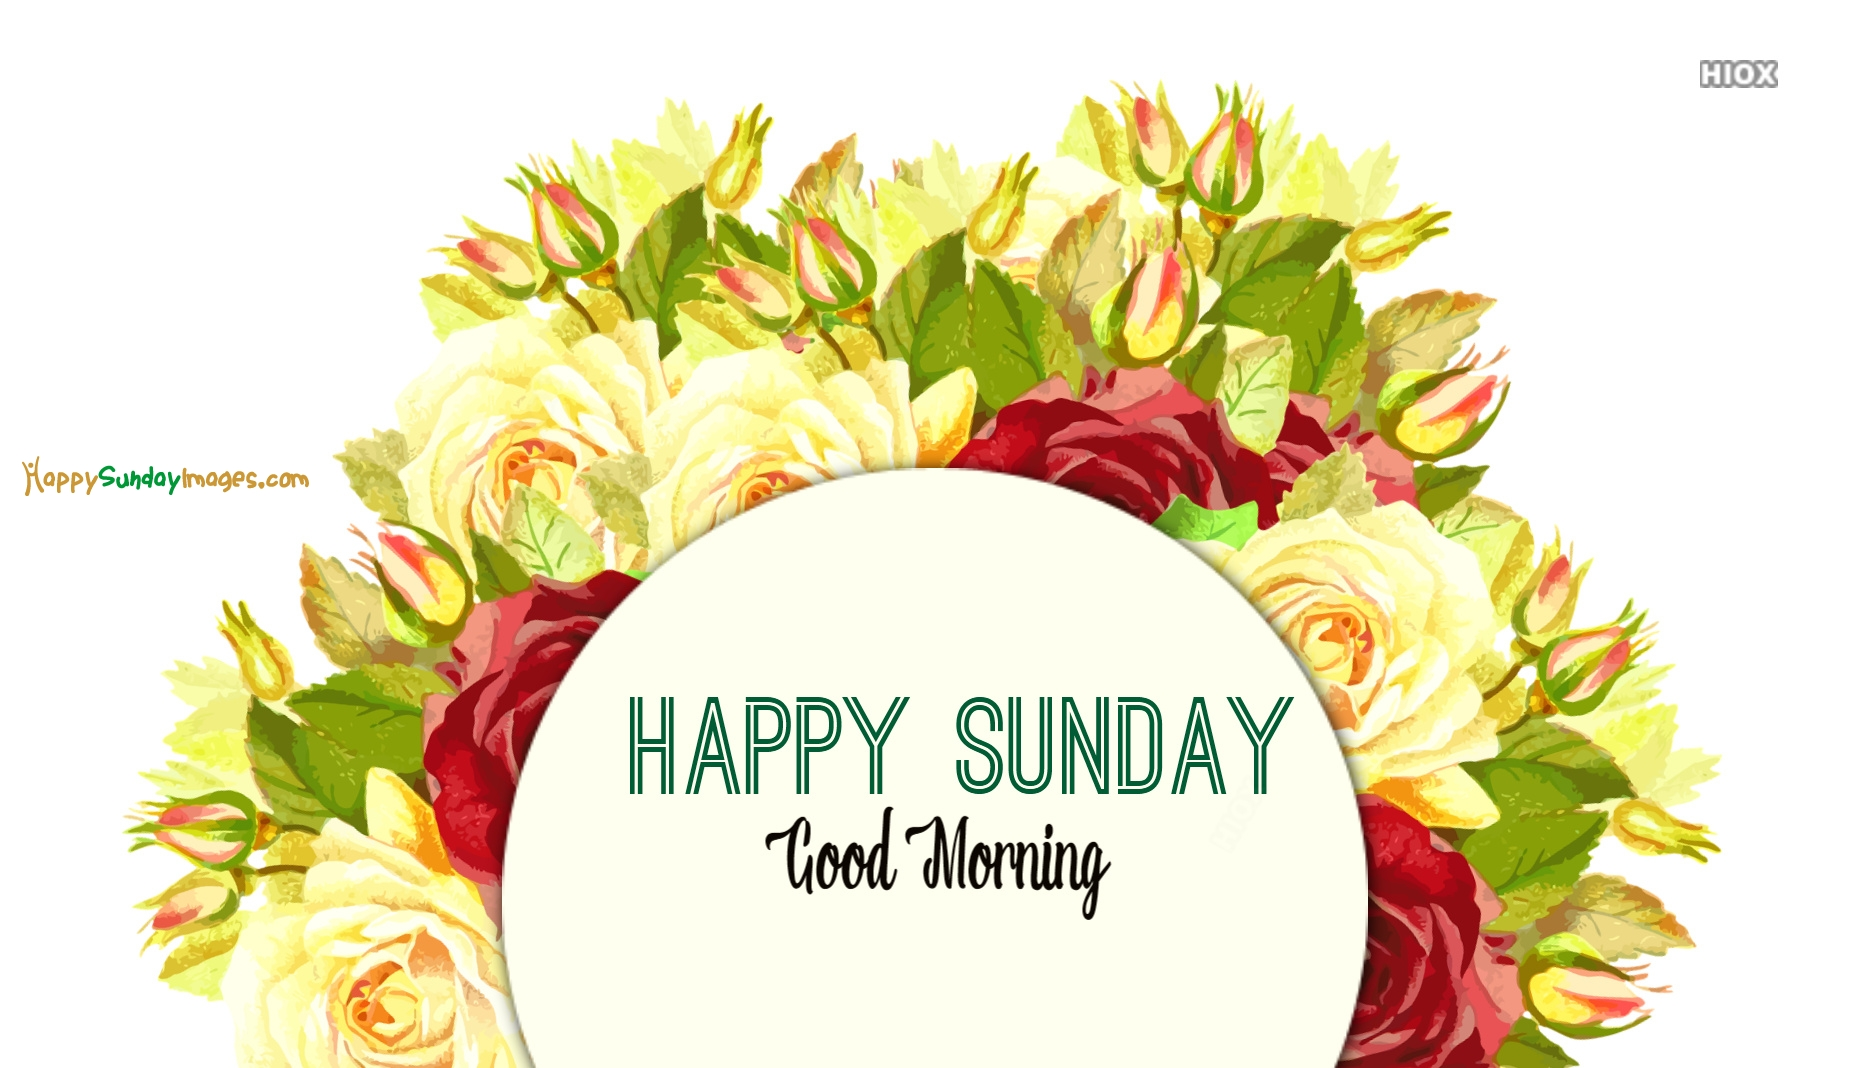 Happy Sunday With Good Morning